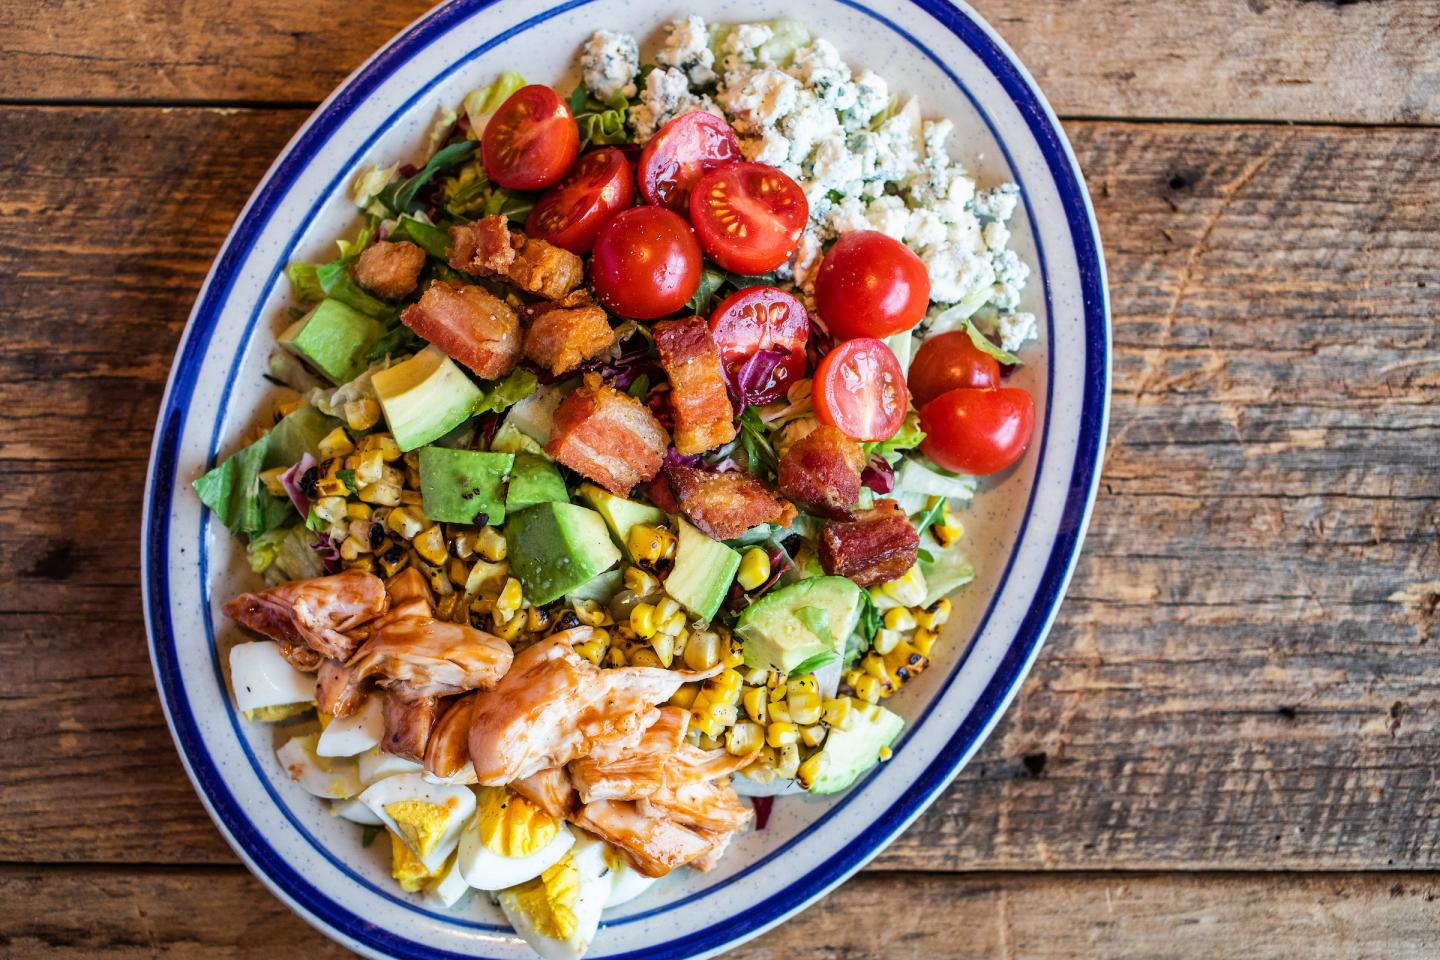 Bub City Cobb Salad